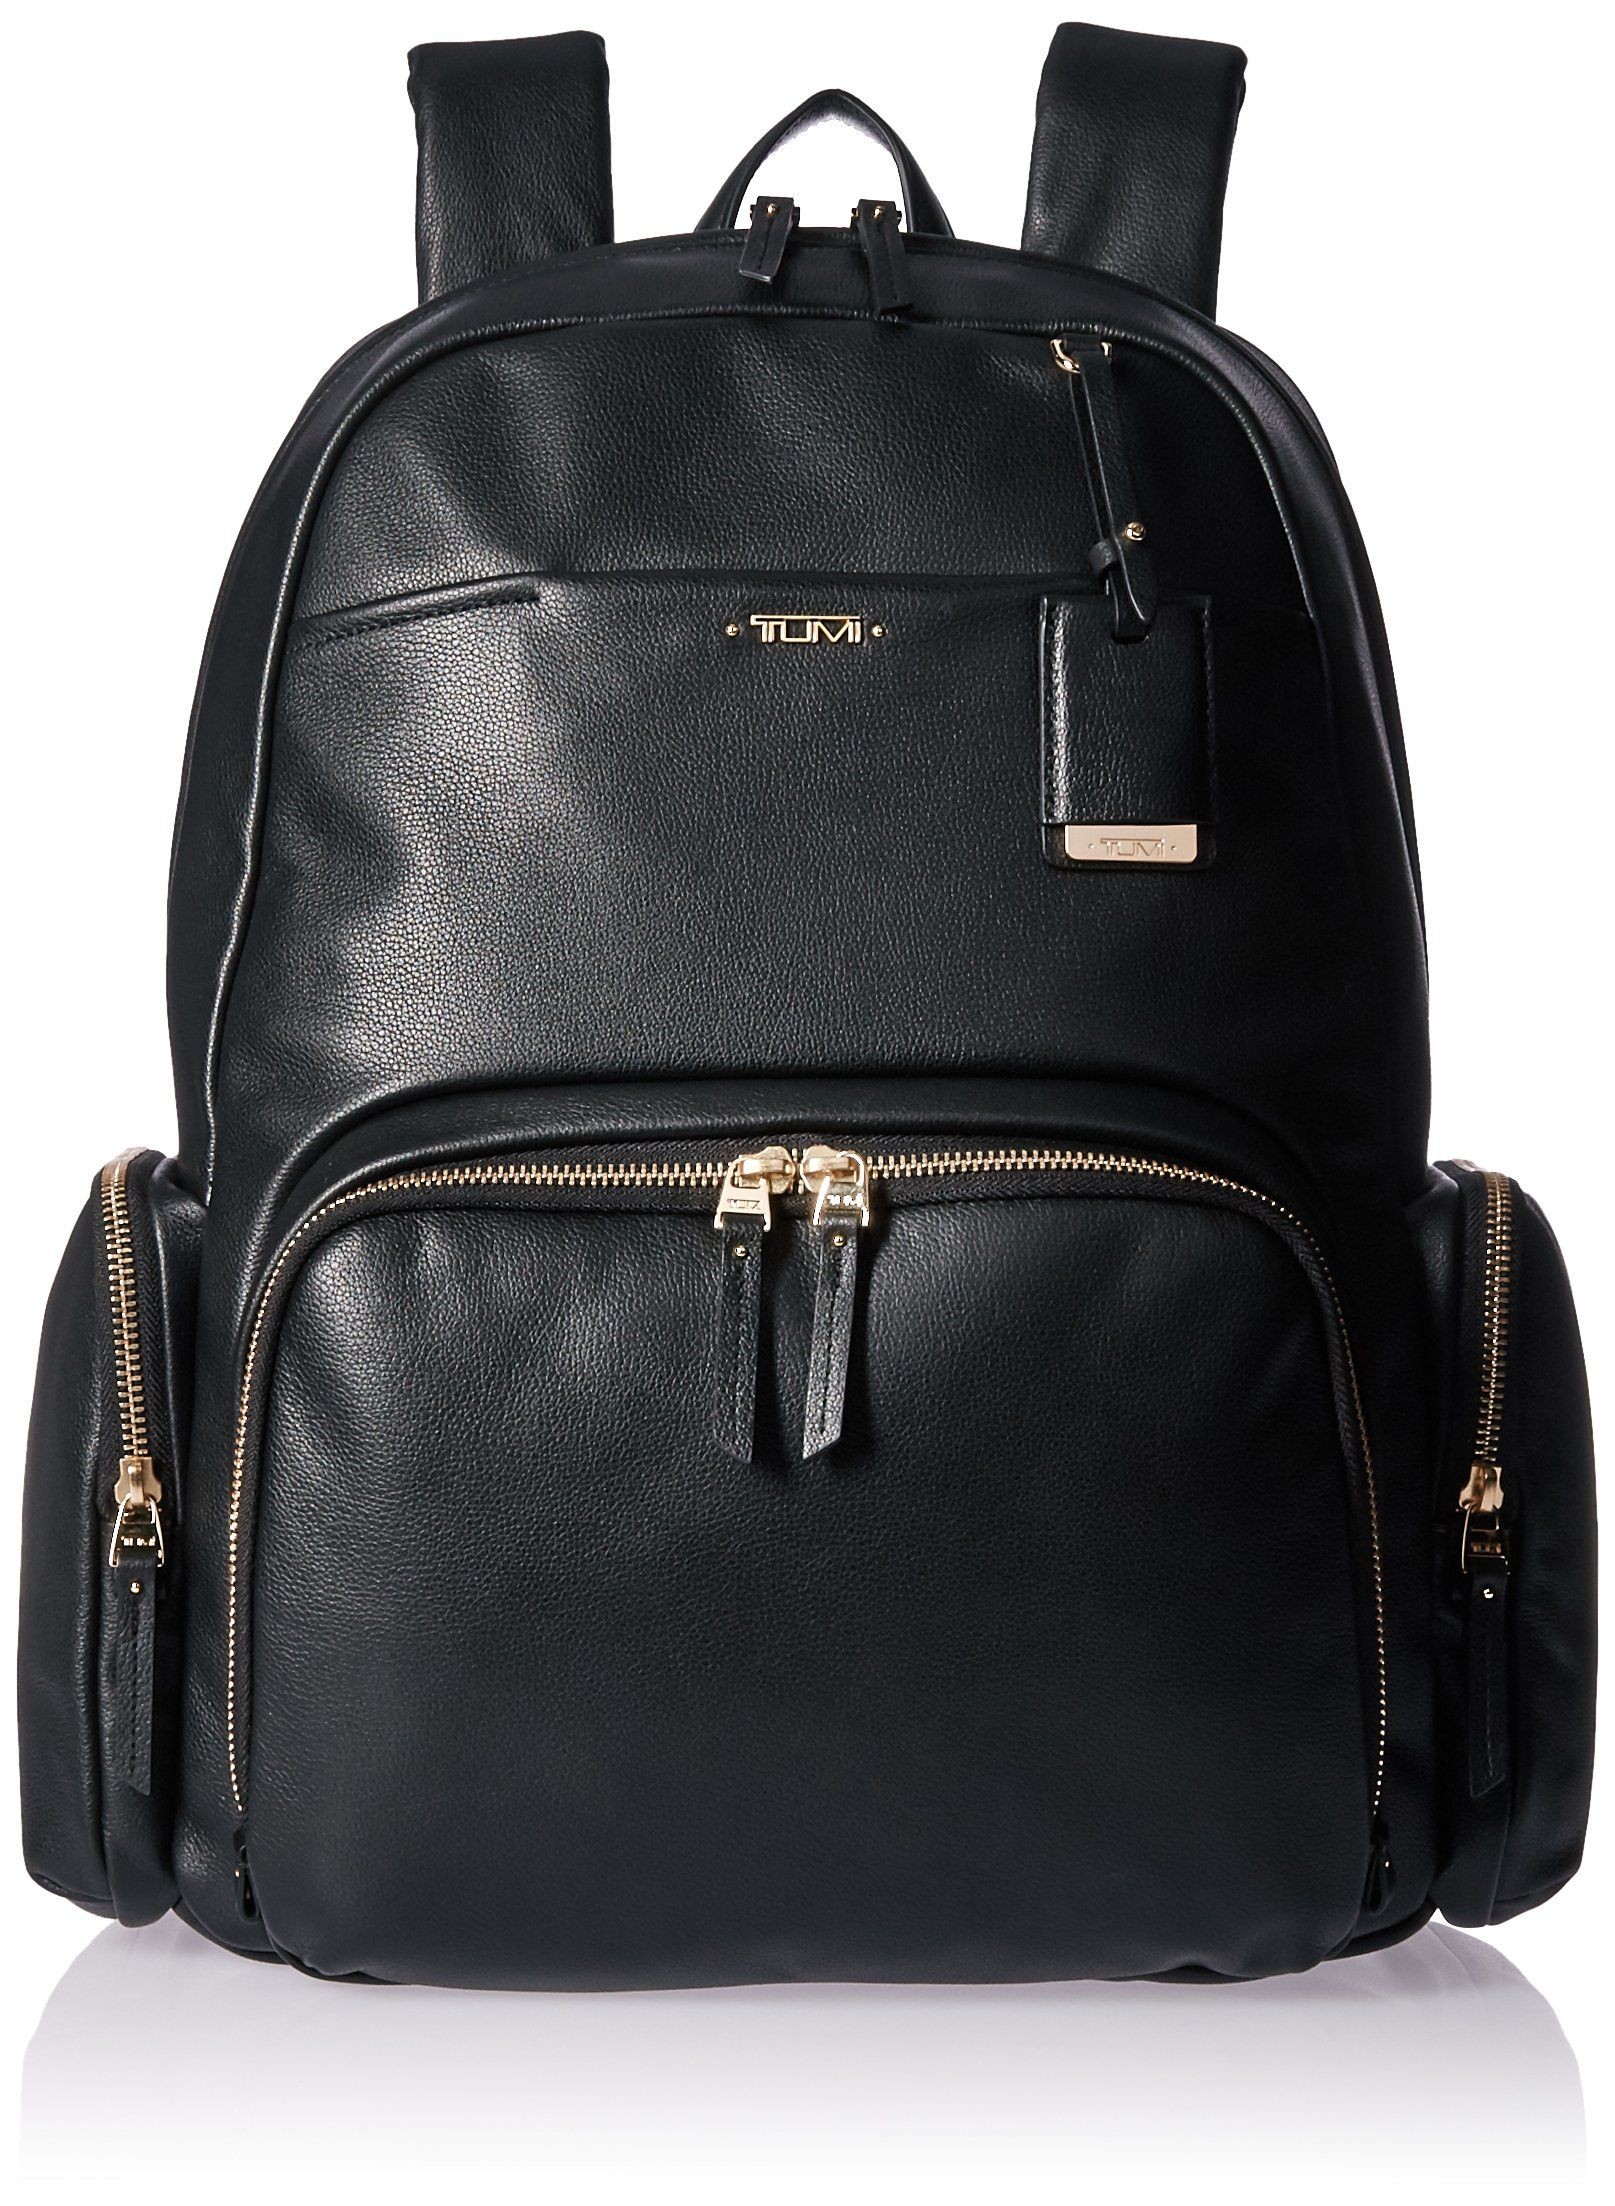 Tumi Women s Voyageur Leather Calais Backpack 29a6abc2ea786